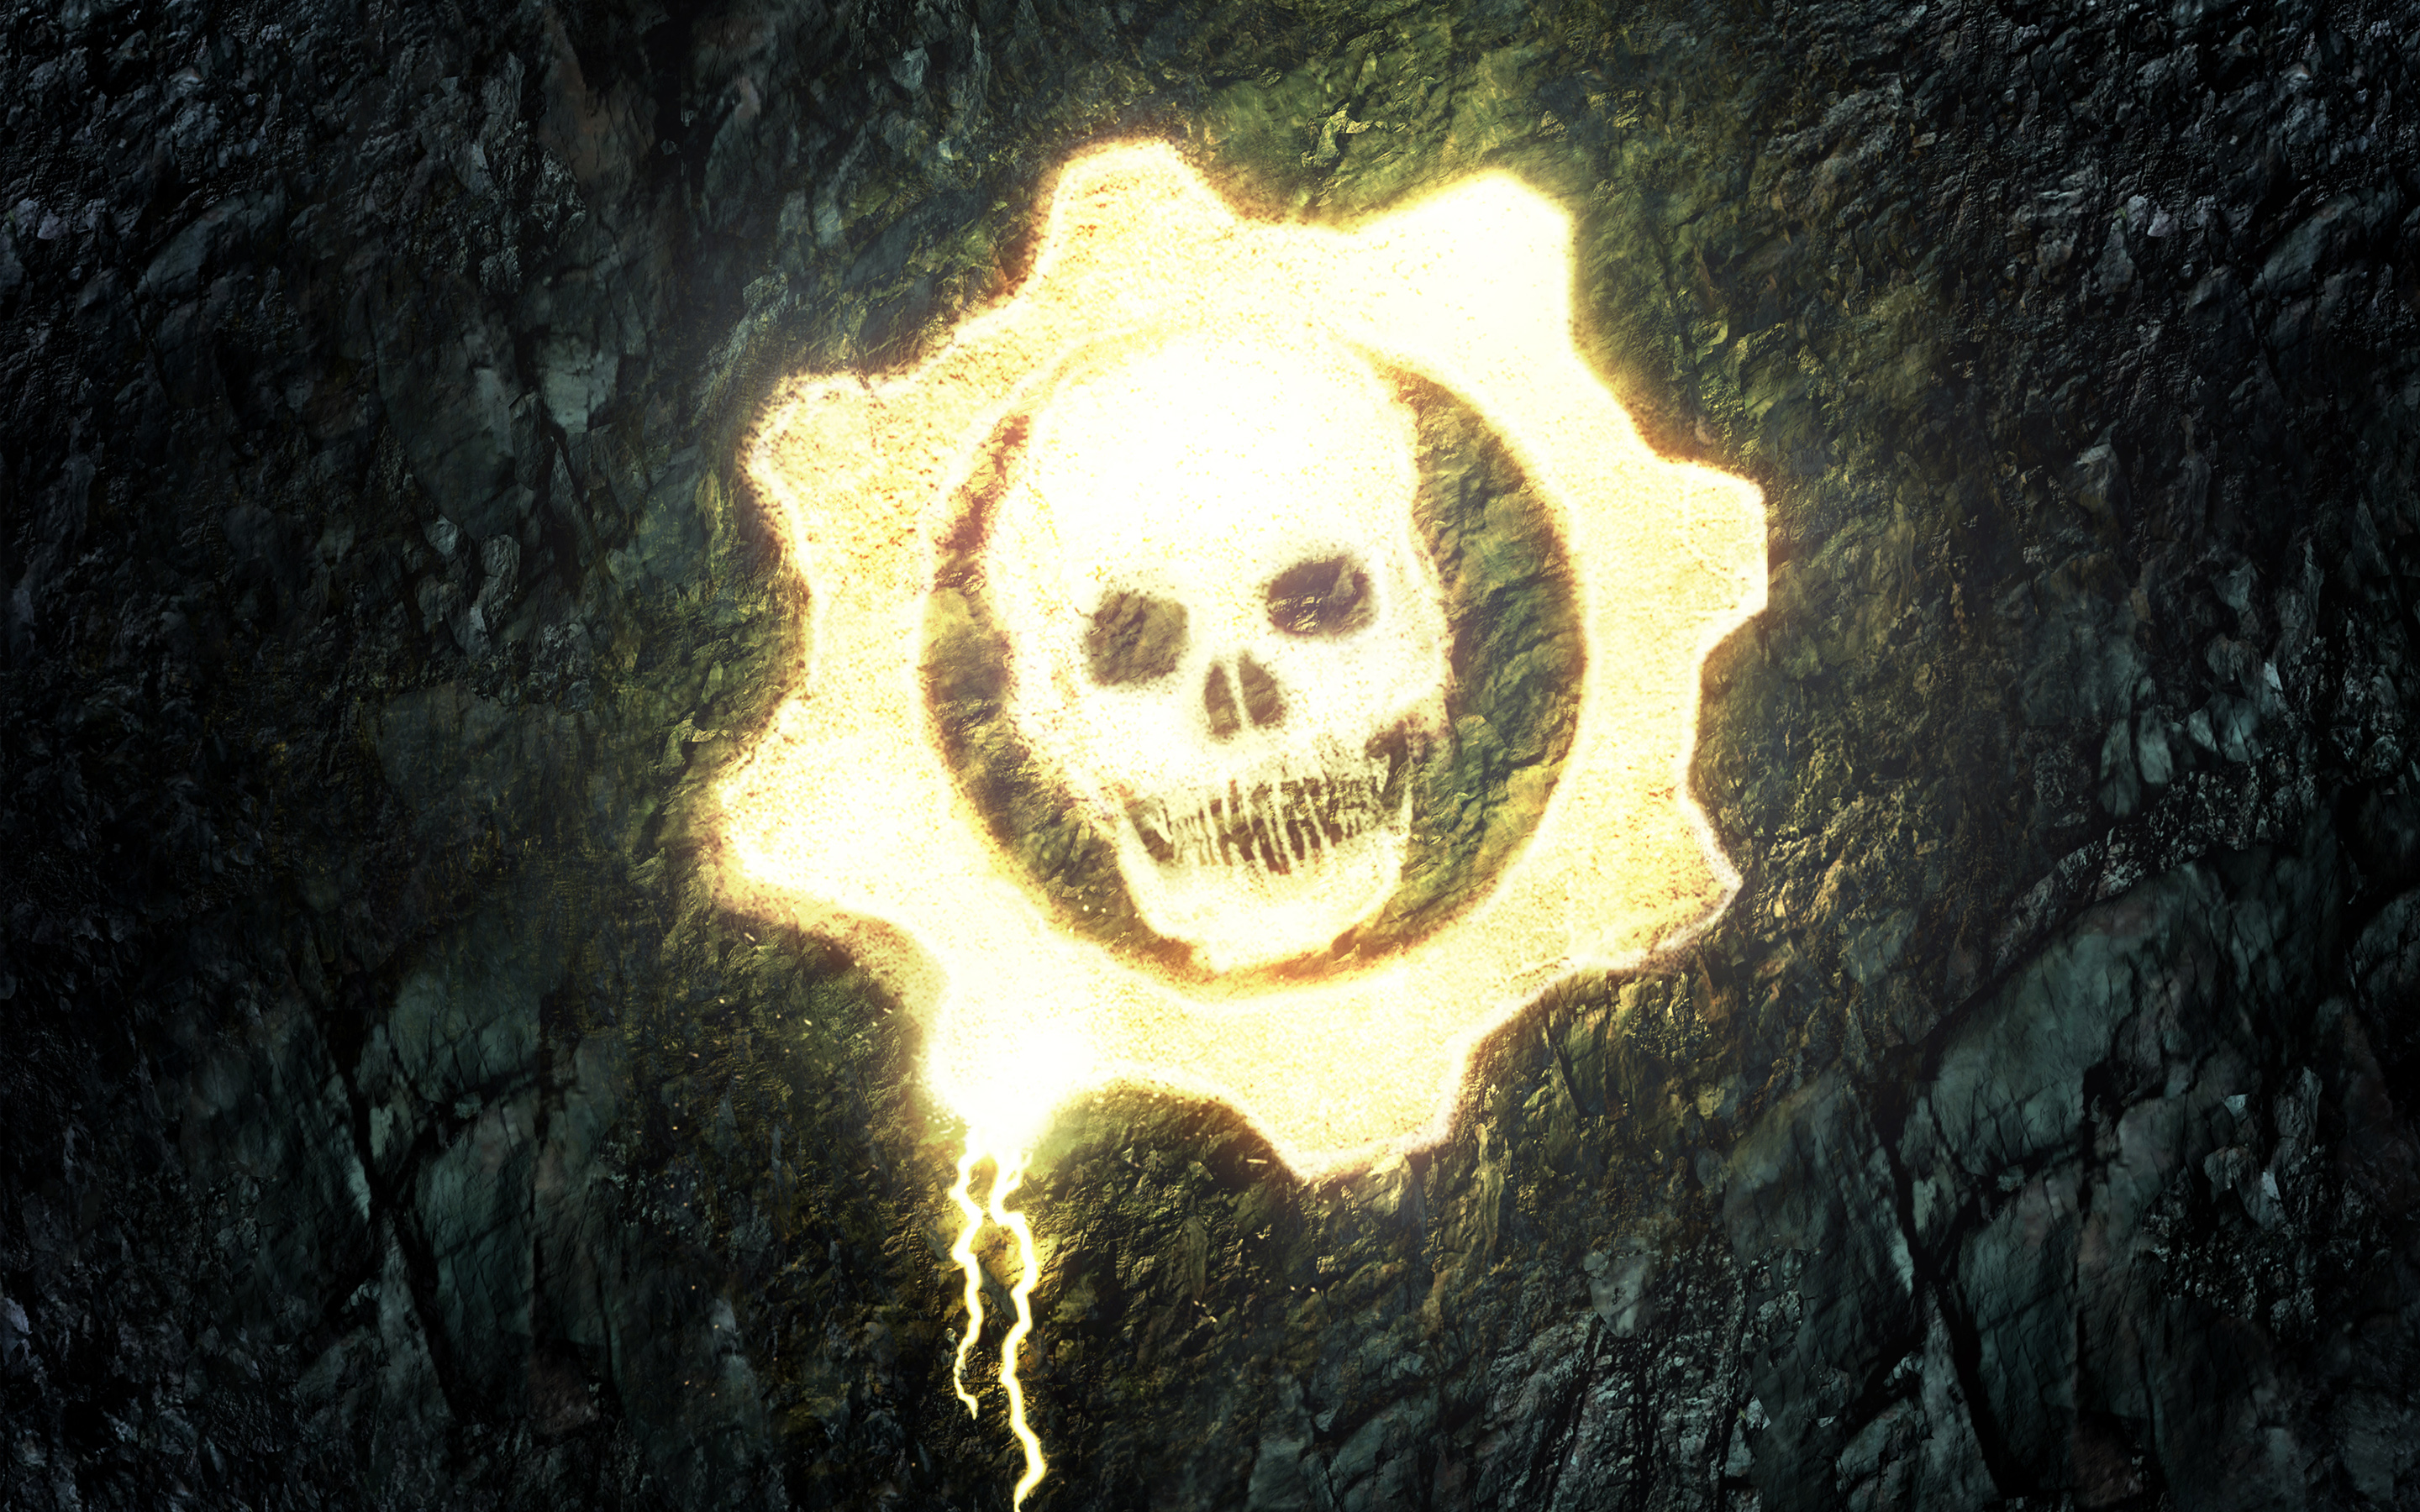 Gears of War Skull Wallpapers HD Wallpapers 2880x1800